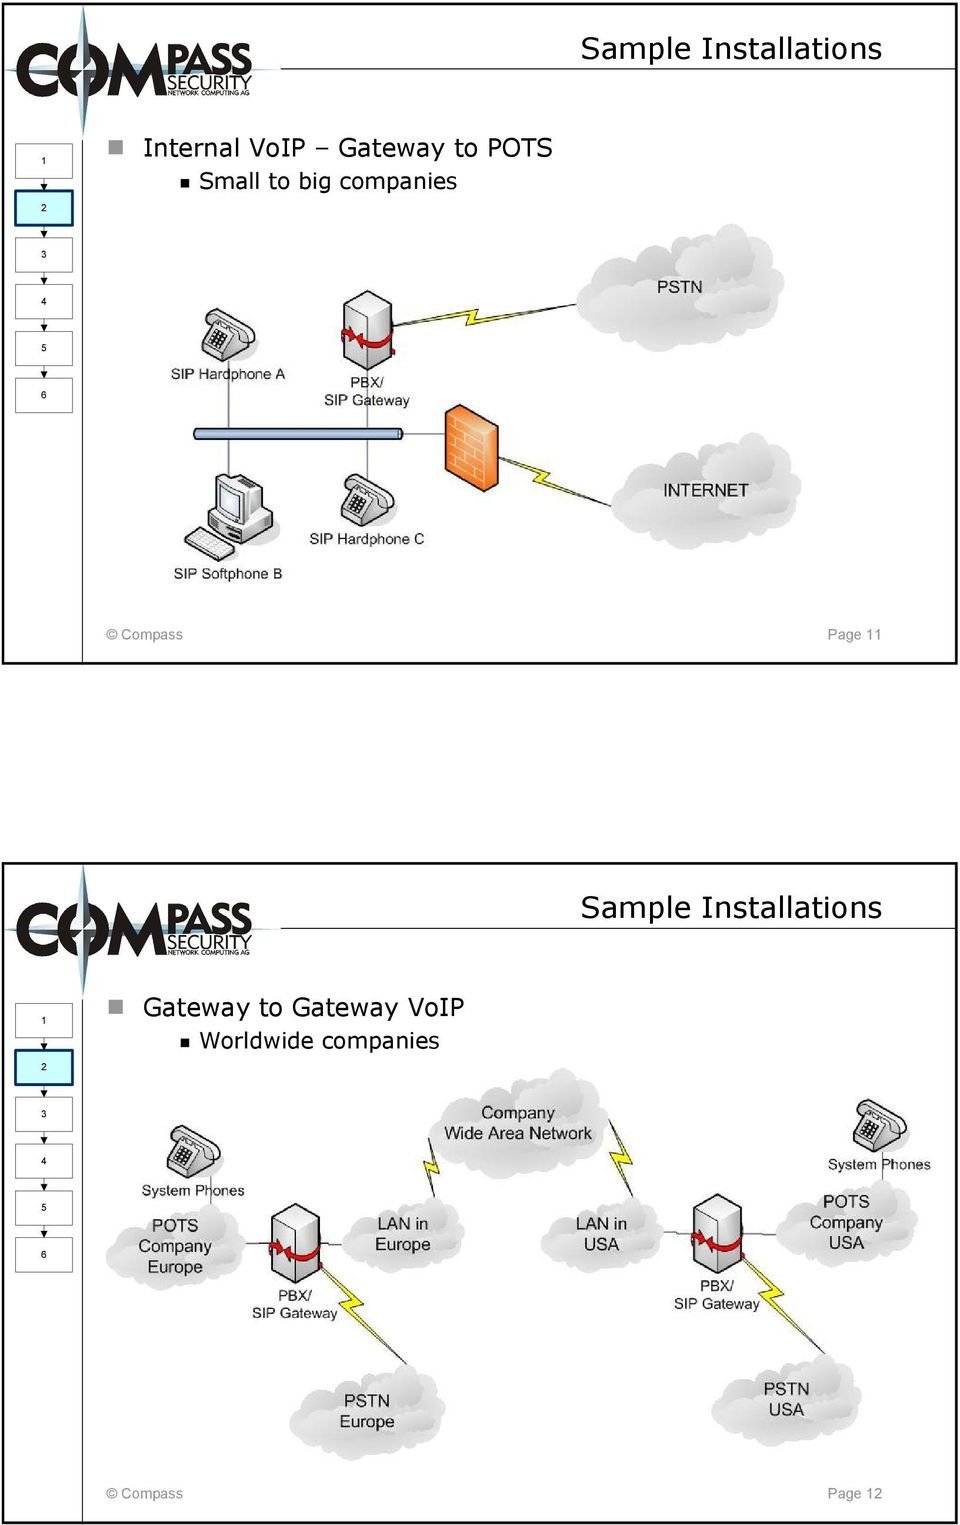 Compass Pae Sample Installations Gateway